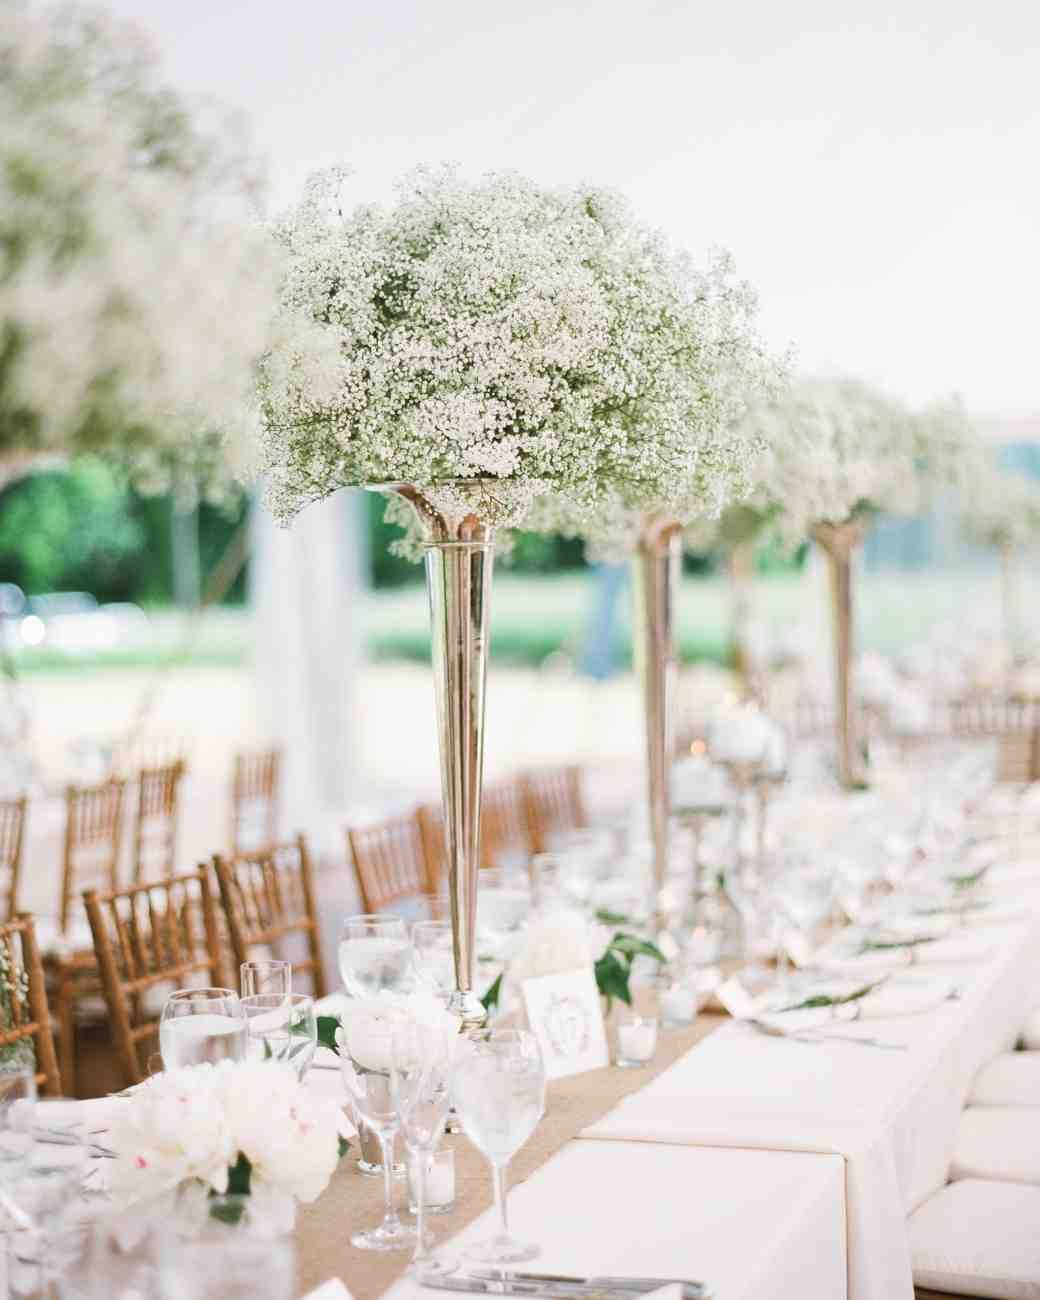 Wedding Centerpieces | Affordable Wedding Centerpieces That Still Look Elevated Floral